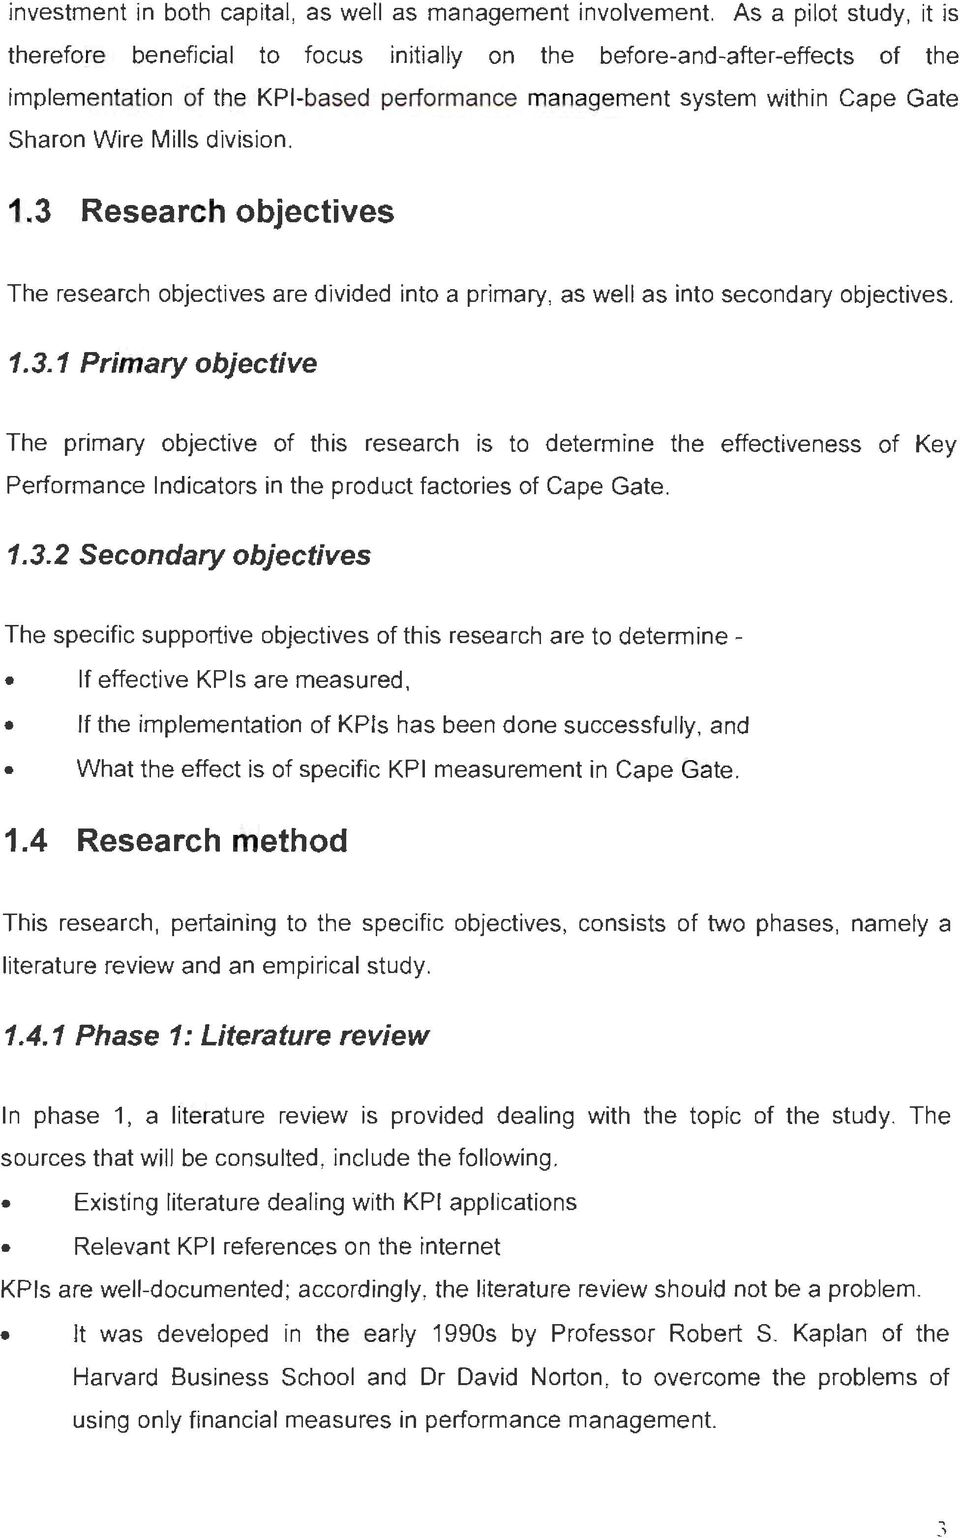 division. 1.3 Research objectives The research objectives are divided into a primary, as well as into secondary objectives. 1.3.1 Primary objective The primary objective of this research is to determine the effectiveness of Key Performance Indicators in the product factories of Cape Gate.